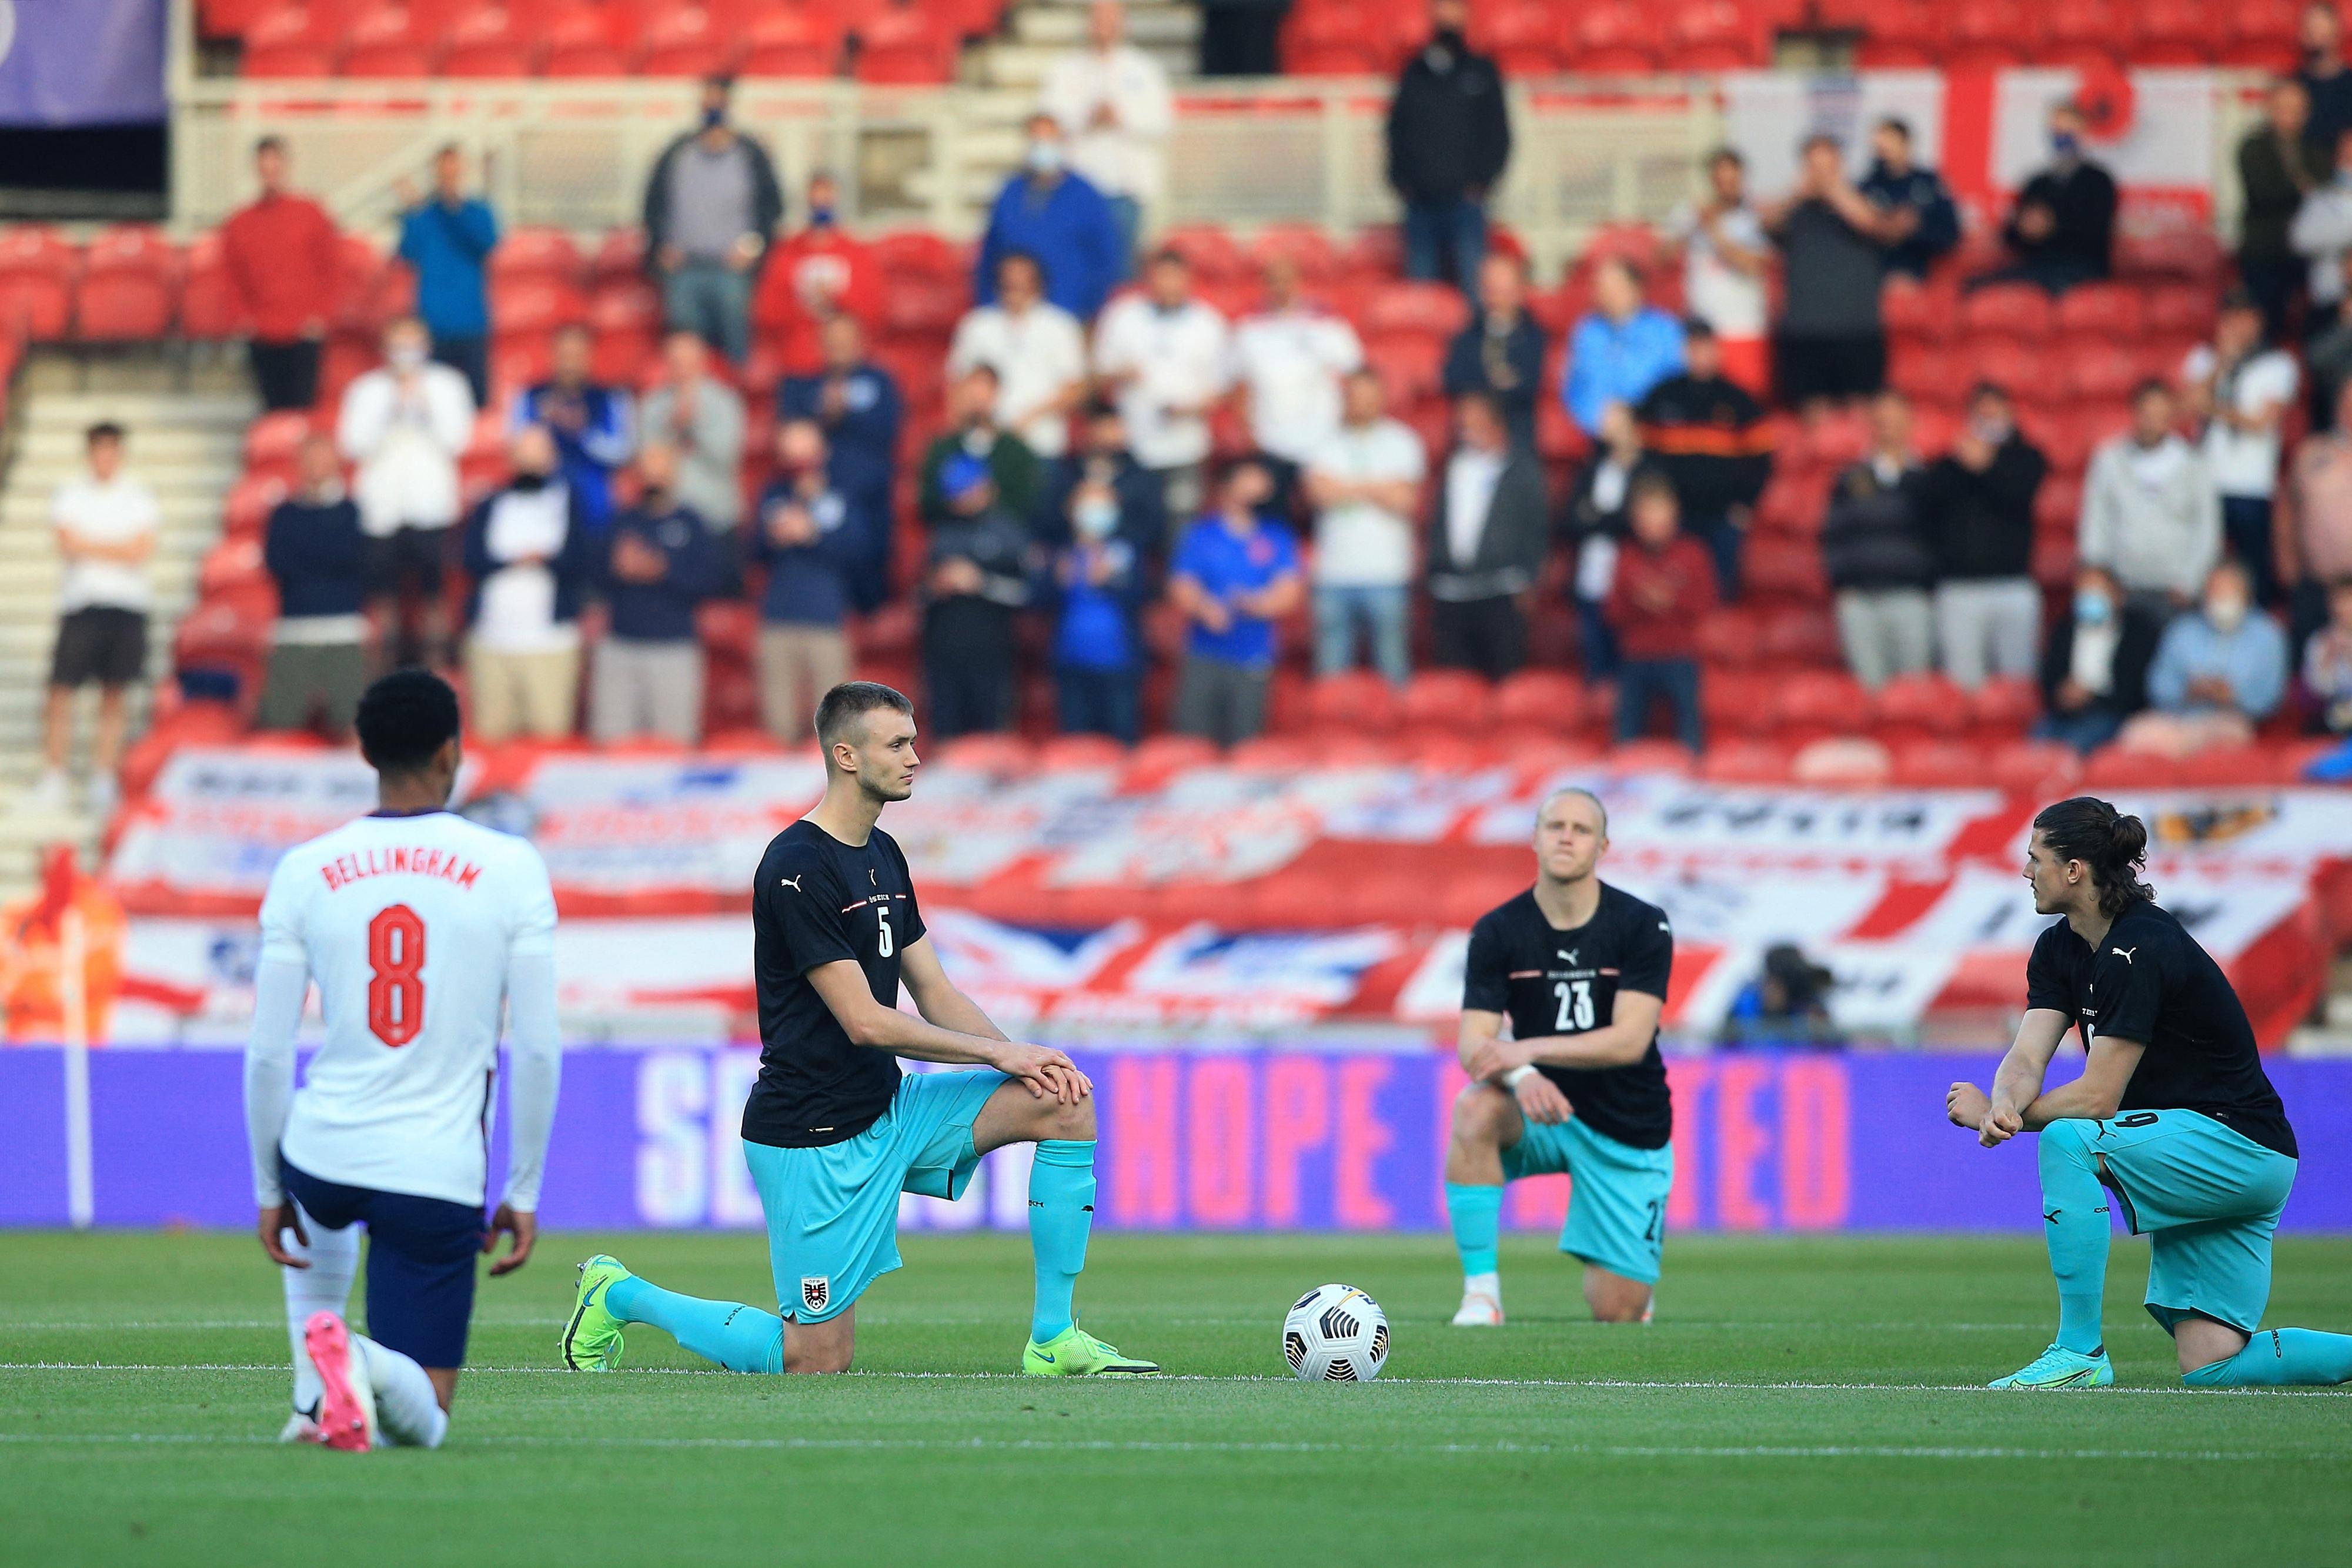 Euro 2020: Row over taking the knee threatens to dent England feel-good factor